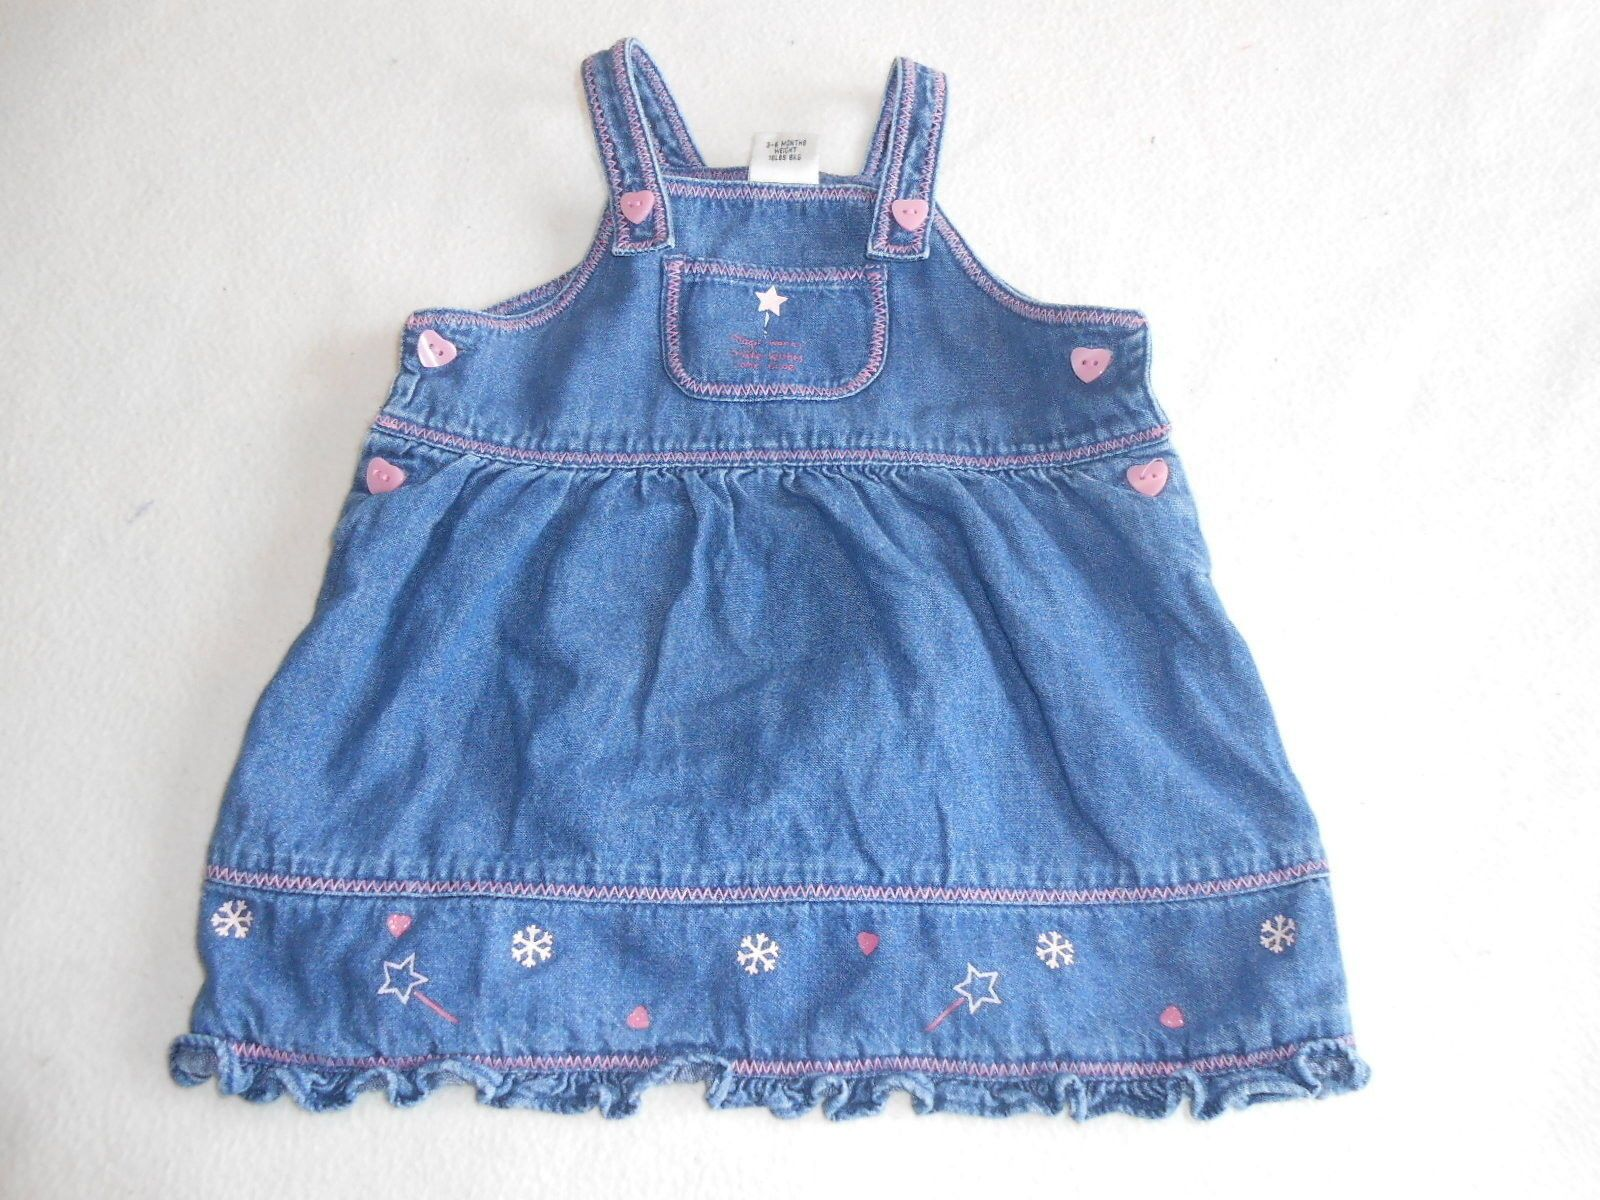 Baby Girls Clothes 3 6 Months Pretty Next Denim Dress • £3 70